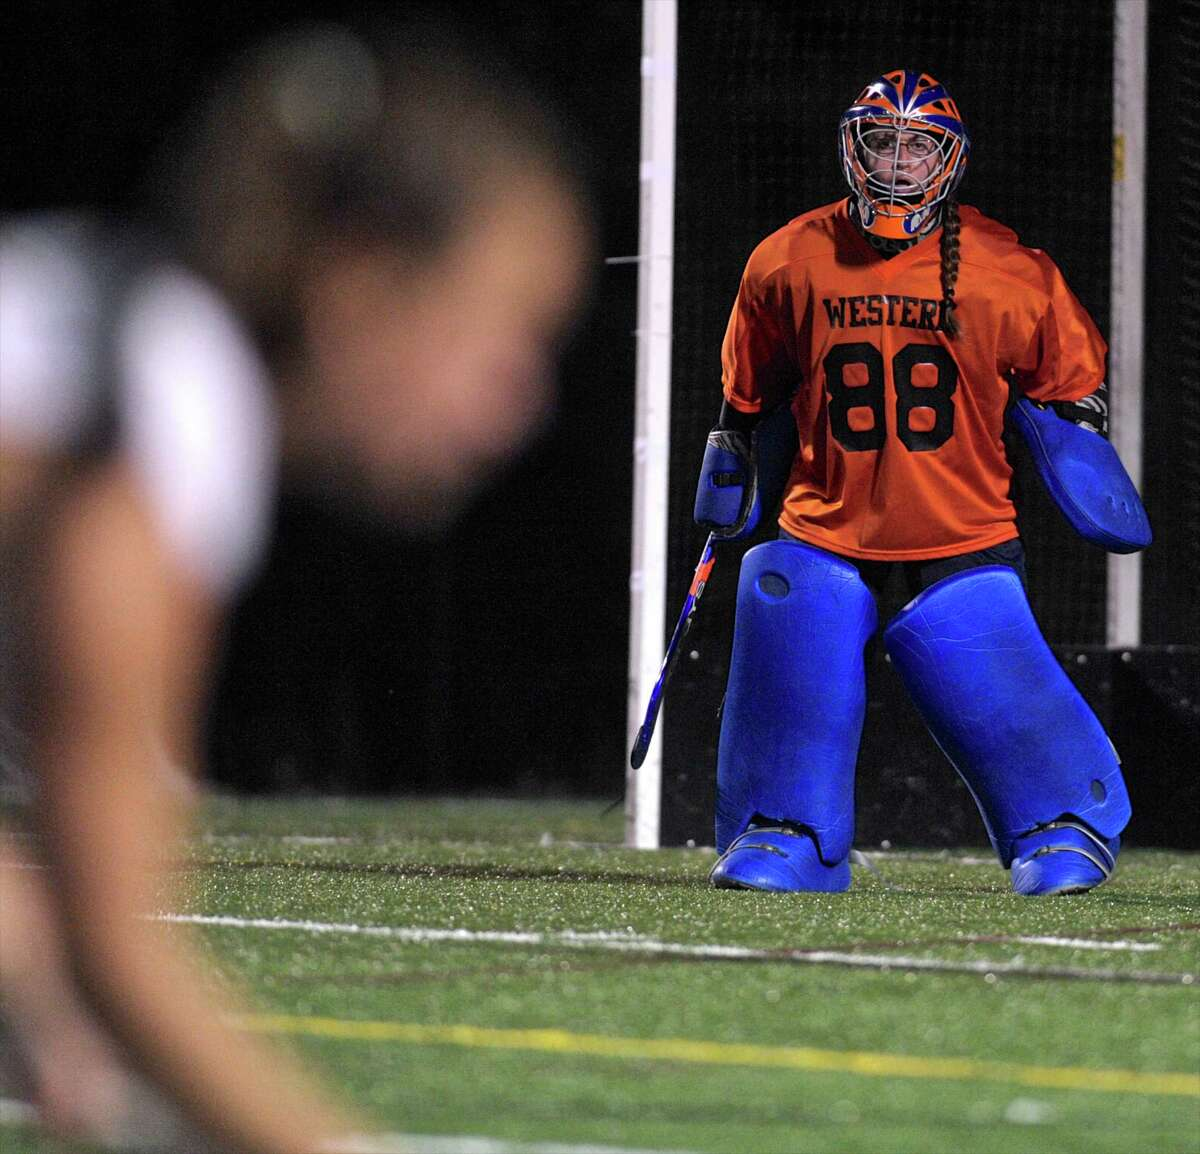 FILE PHOTO: Western's goalie Kristy Trotta (88) watches as New Paltz starts a play after a whistle near the Western goal during the SUNY New Paltz Hawks, Western Connecticut State University Colonials field hockey game on Tuesday, September 1, 2015, at the WCSU Westside Athletic Complex in Danbury, Conn.